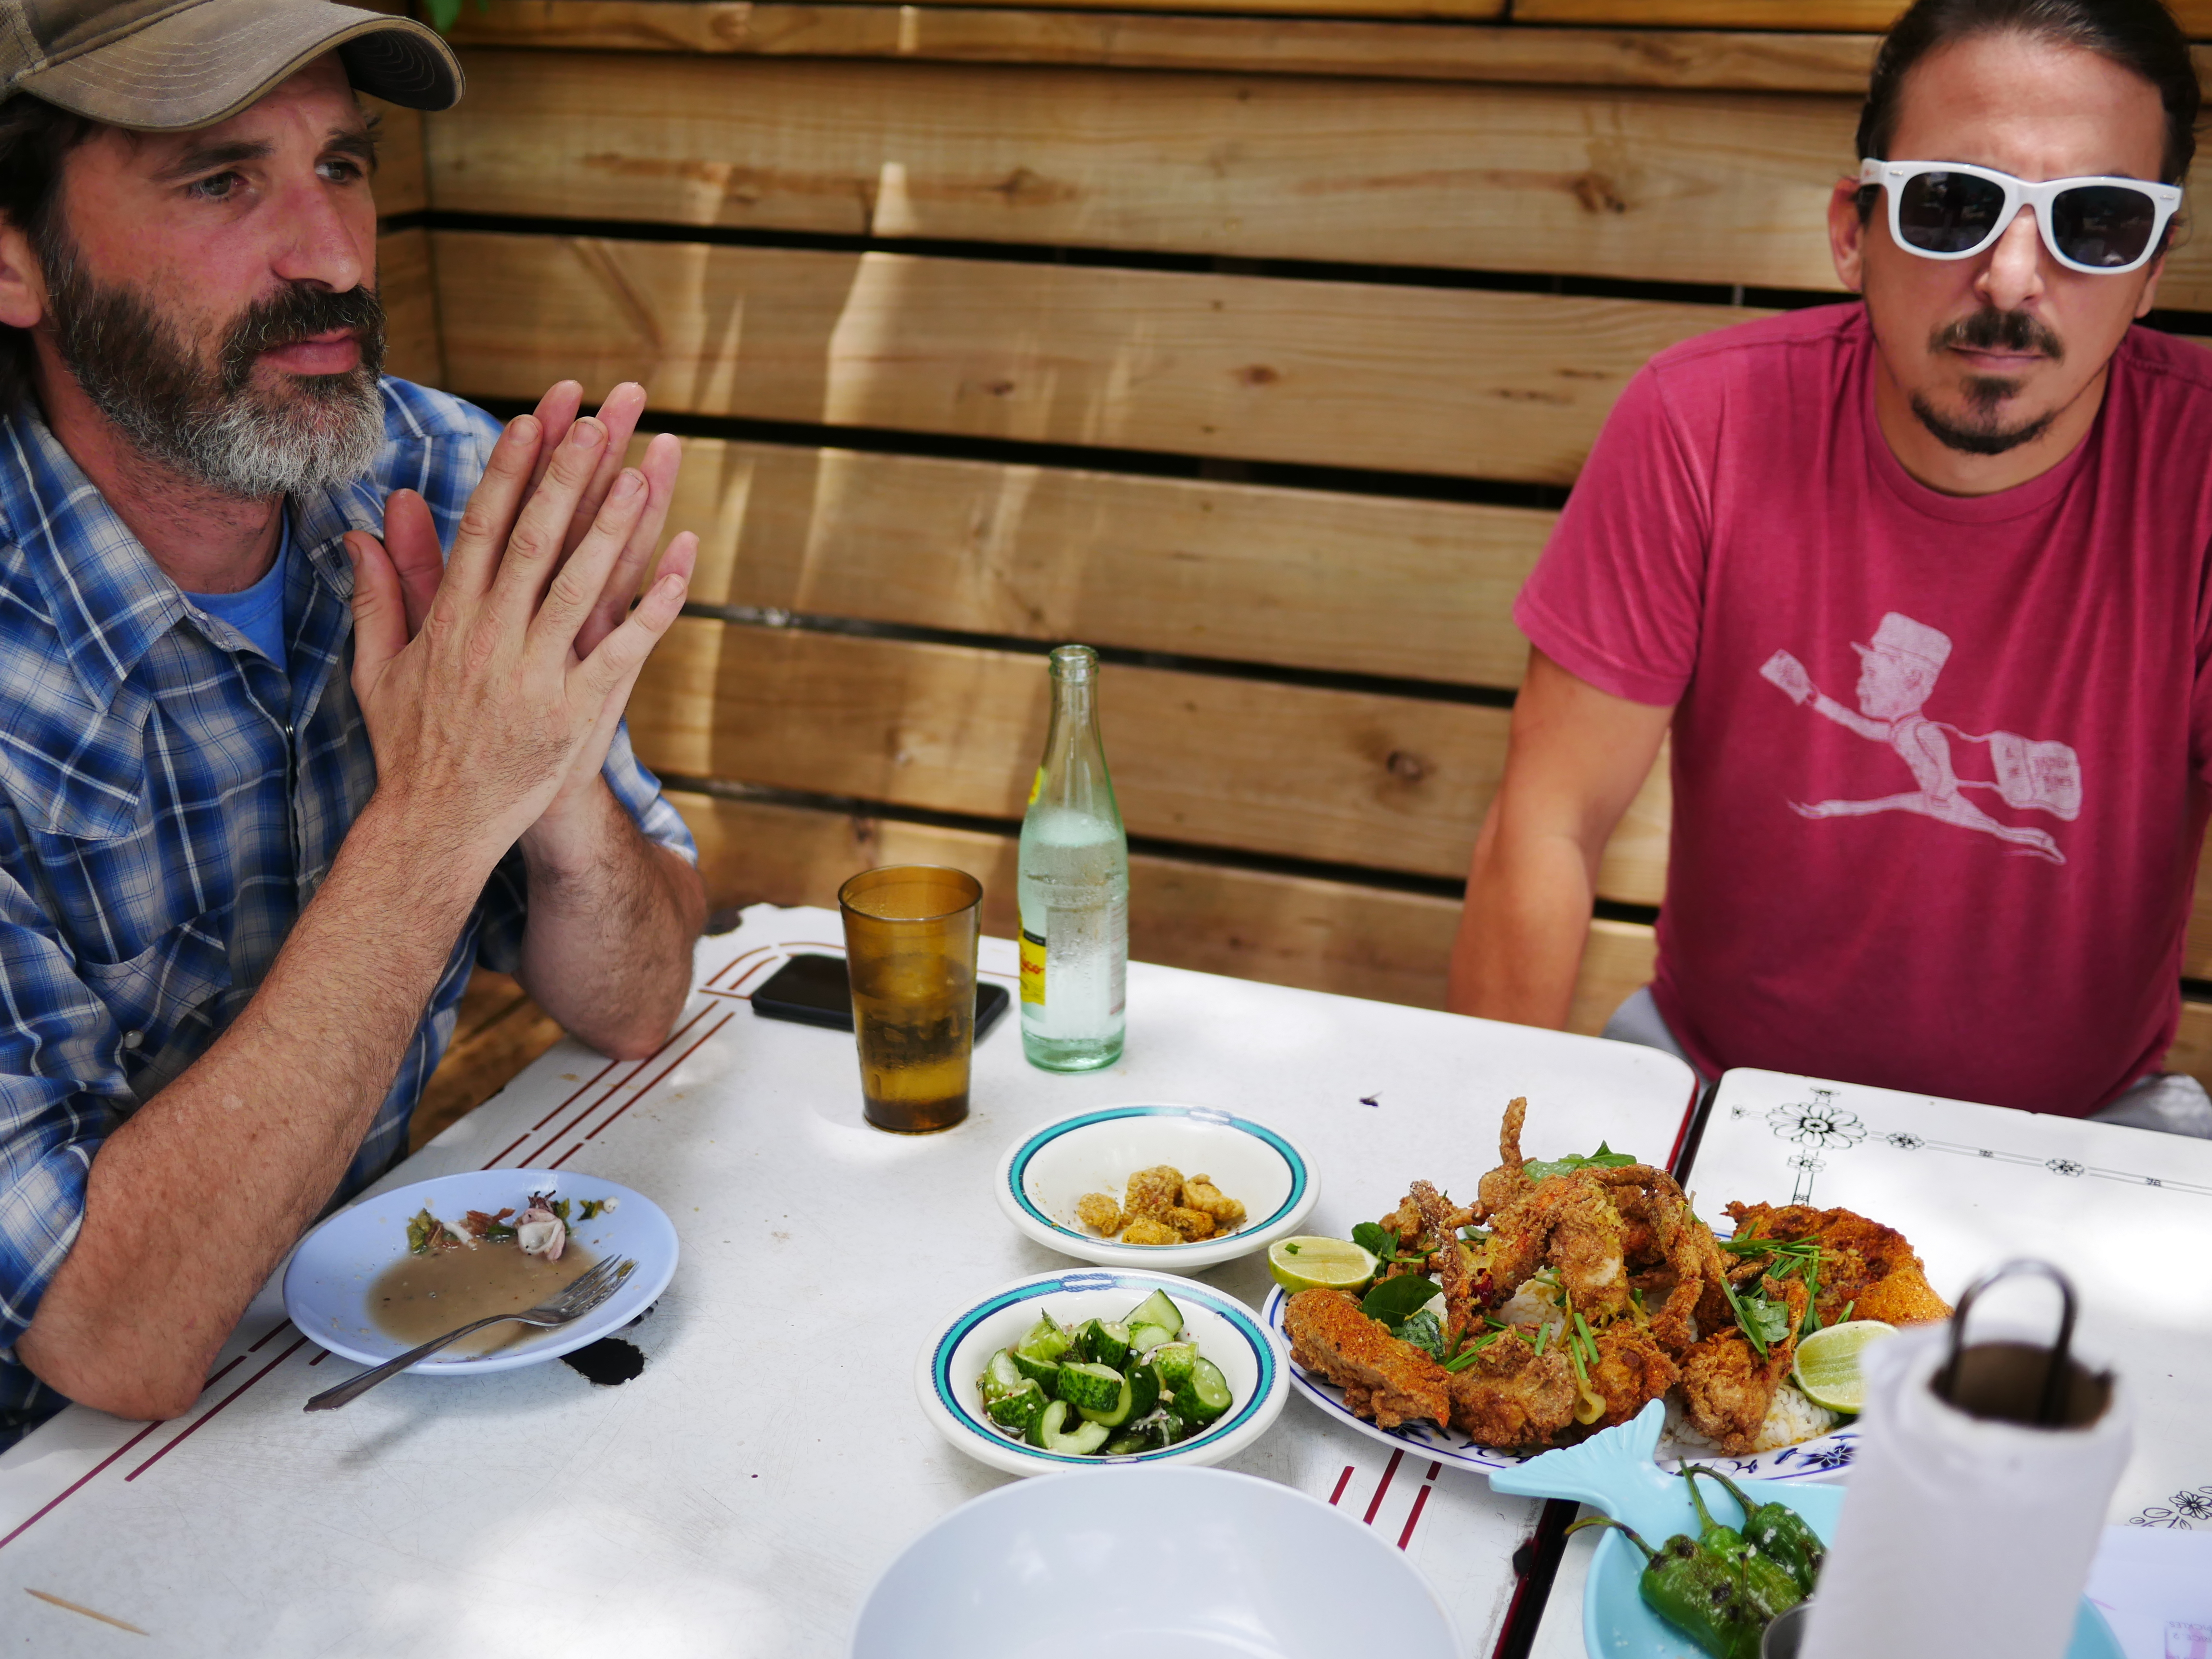 Toby Rodriguez (left) launched a career as a traveling butcher after he was featured on a 2011 episode of Anthony Bourdain's No Reservations. Now he plans to open a restaurant in New Orleans with Barrett Dupuis (right) as general manager. Rodriguez says the late Bourdain was accurate and unflinching in his portrayal of Cajun country.